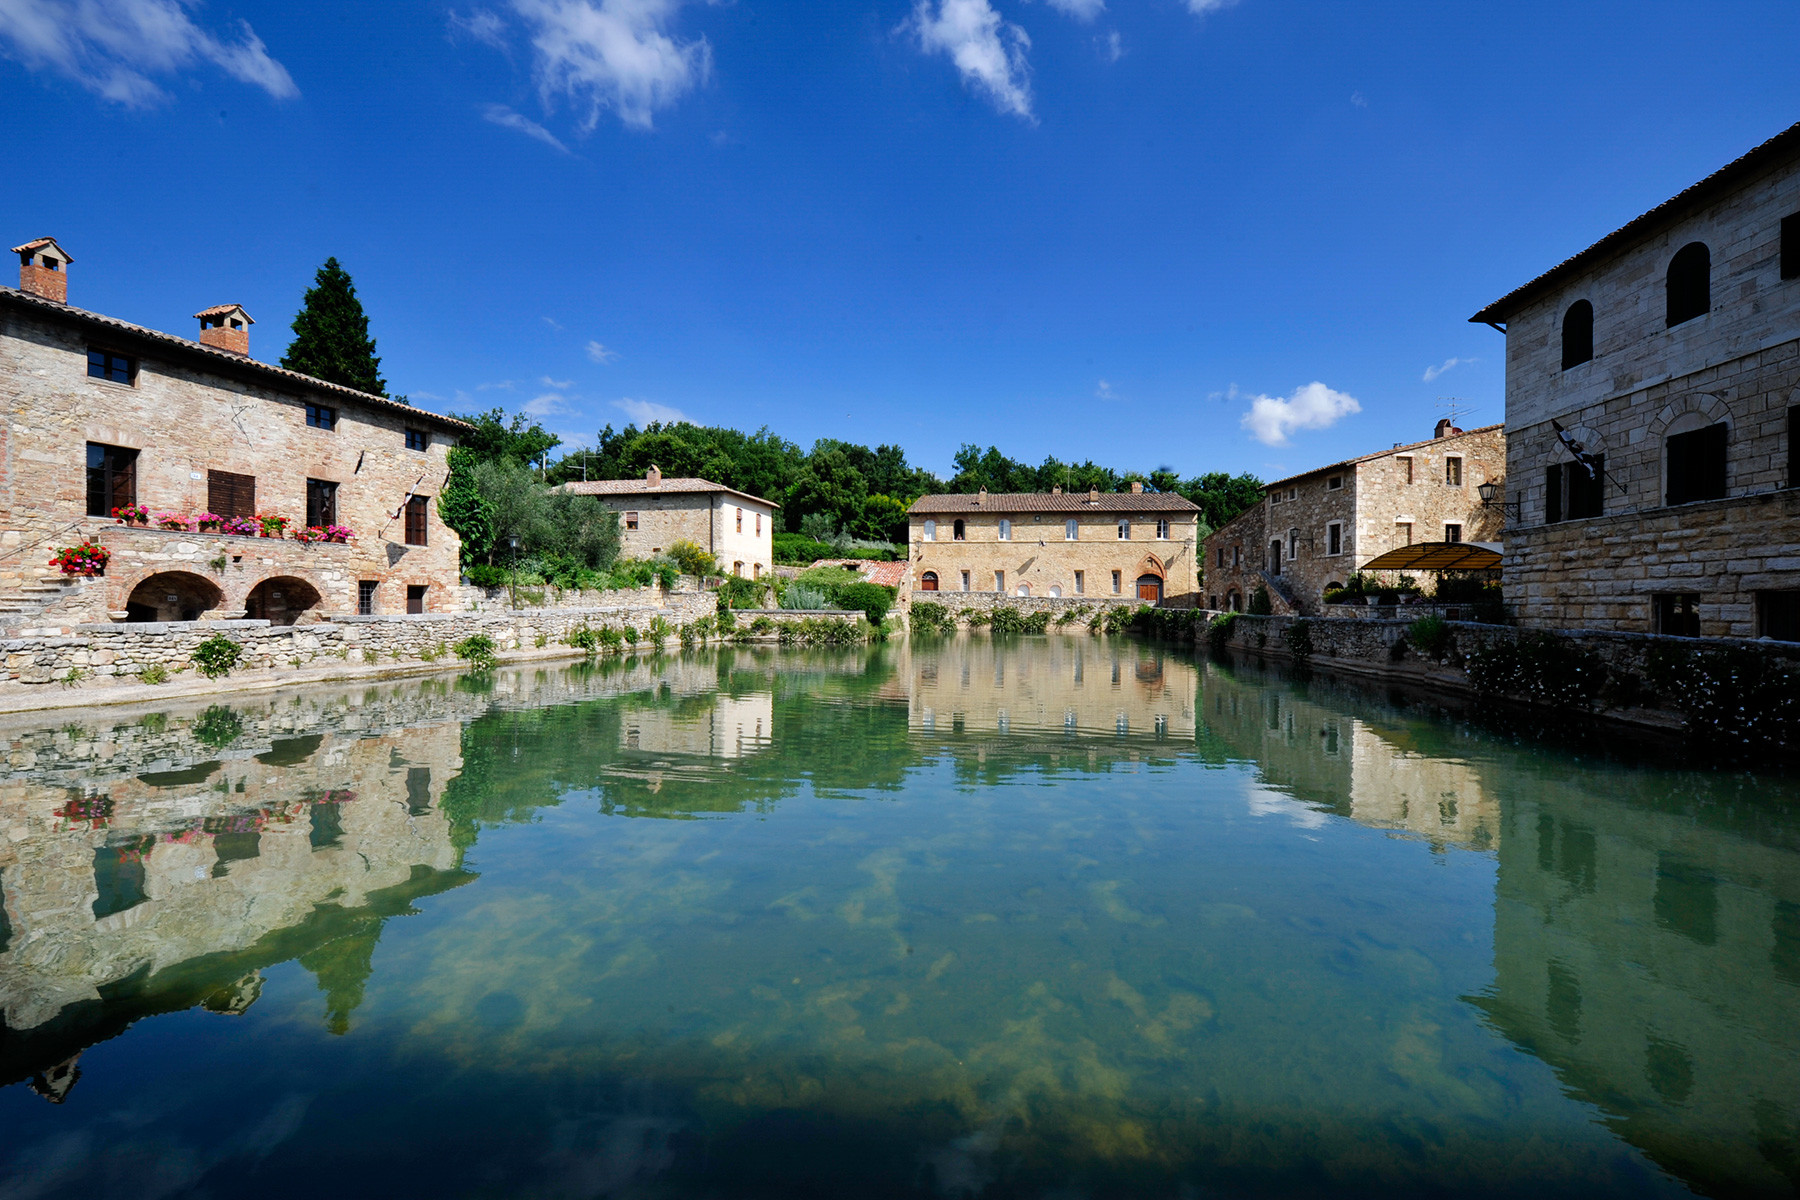 Bagno Vignoni Free Thermal Baths Tours And Itineraries In Tuscany Visiting Cortona Montepulciano